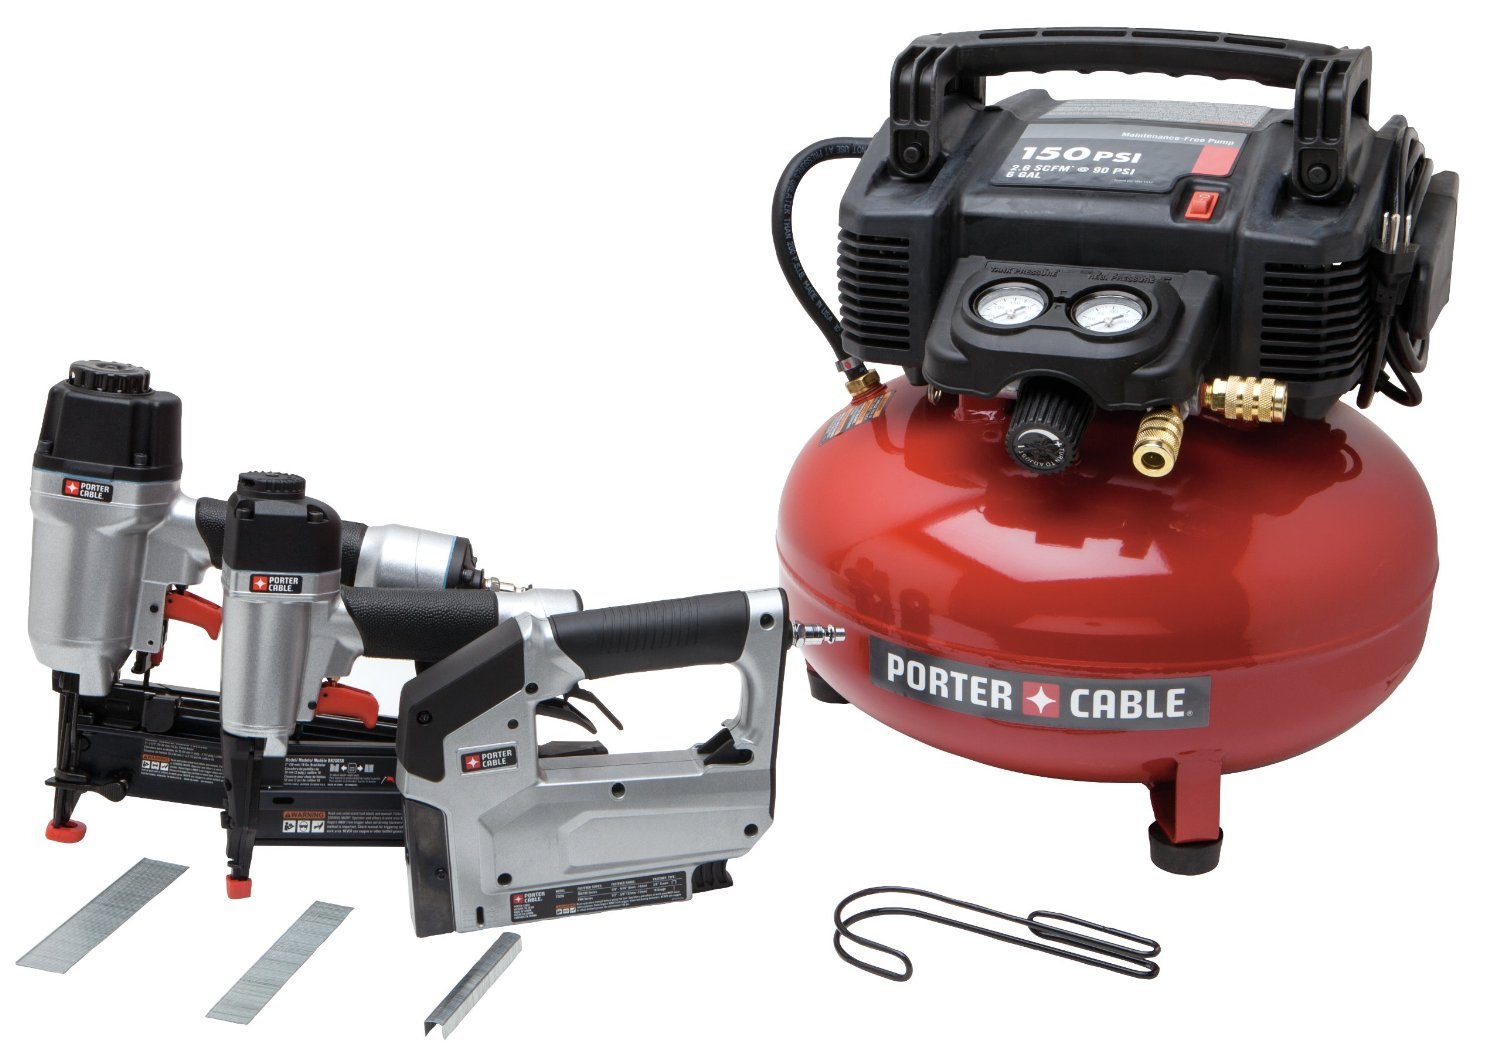 Best Nail Gun - Your Ultimate Buying Guide - Air Compressor Journal